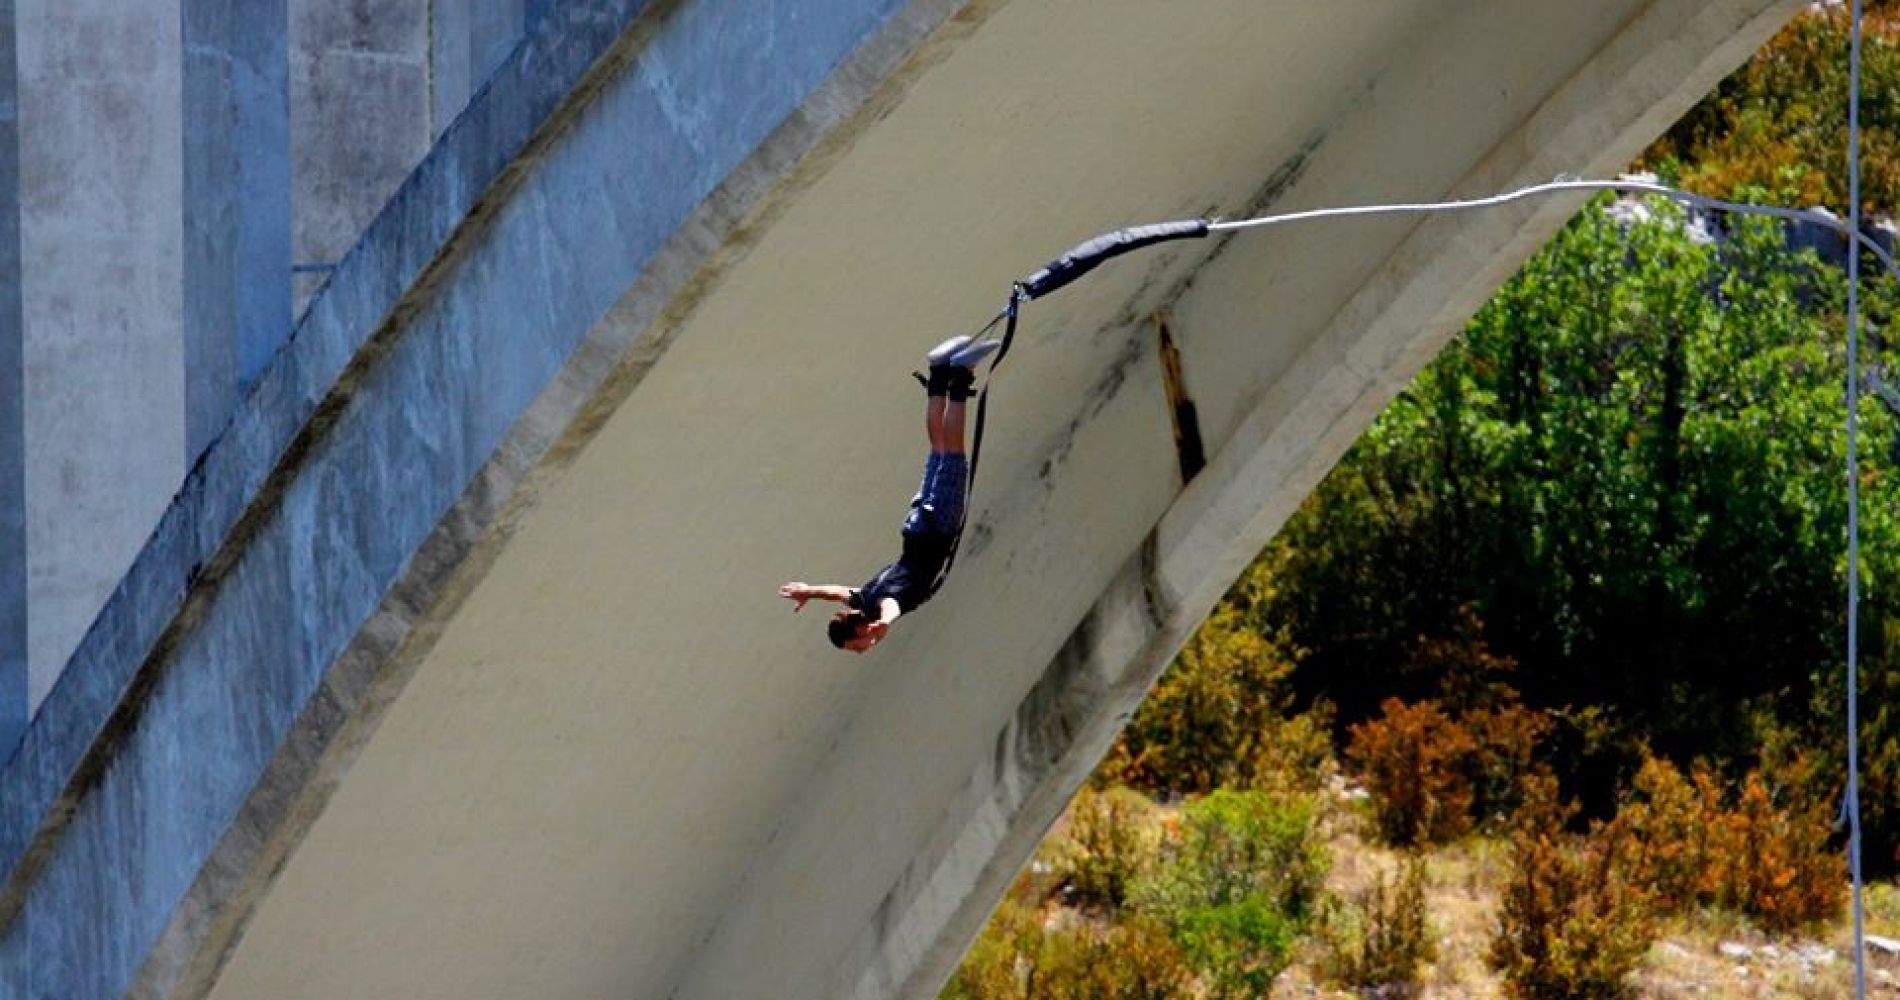 Bungee jump from Artuby Bridge